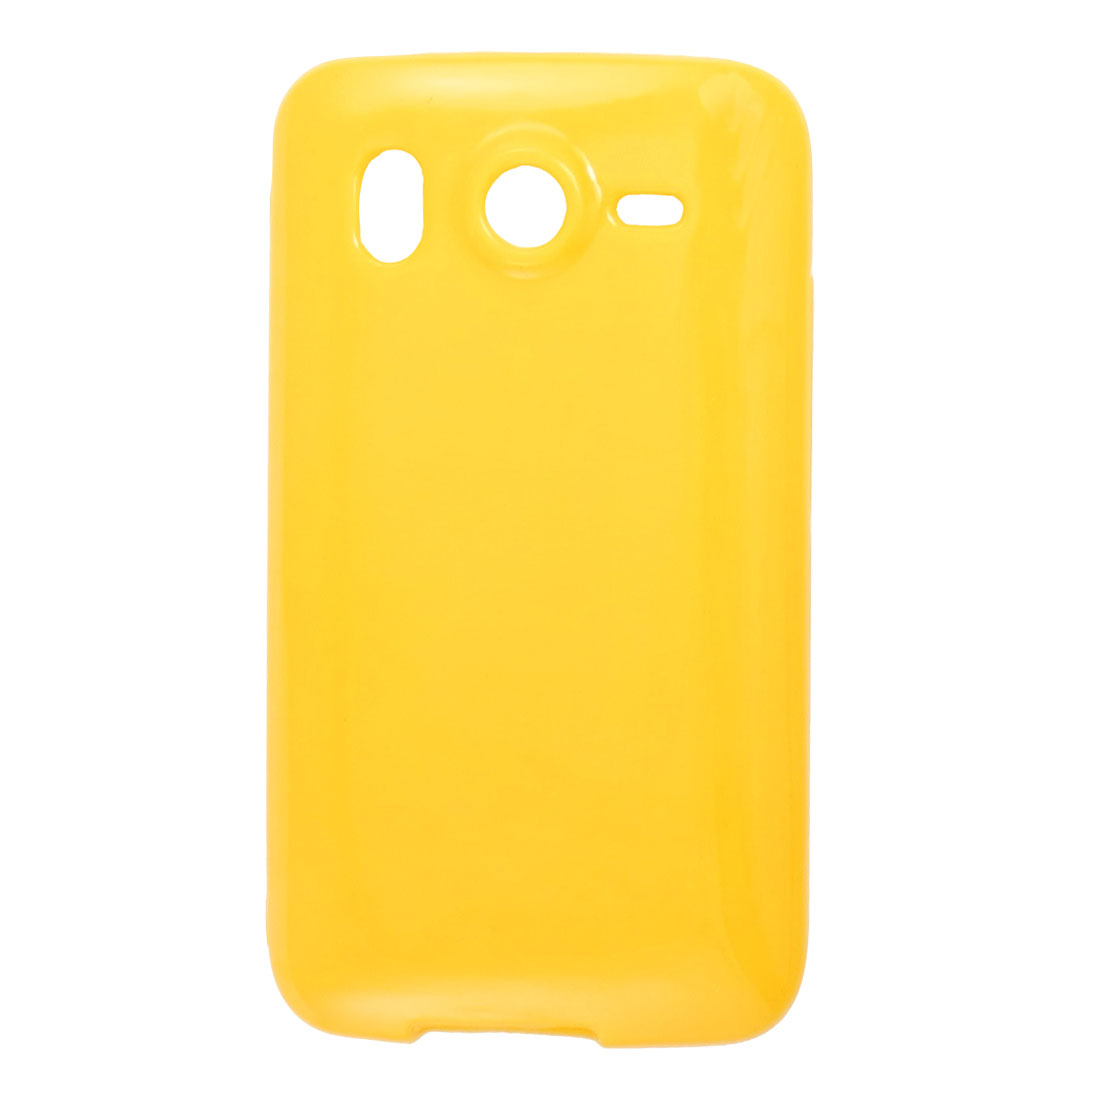 Yellow Soft Plastic Protective Cover for HTC Desire HD G10